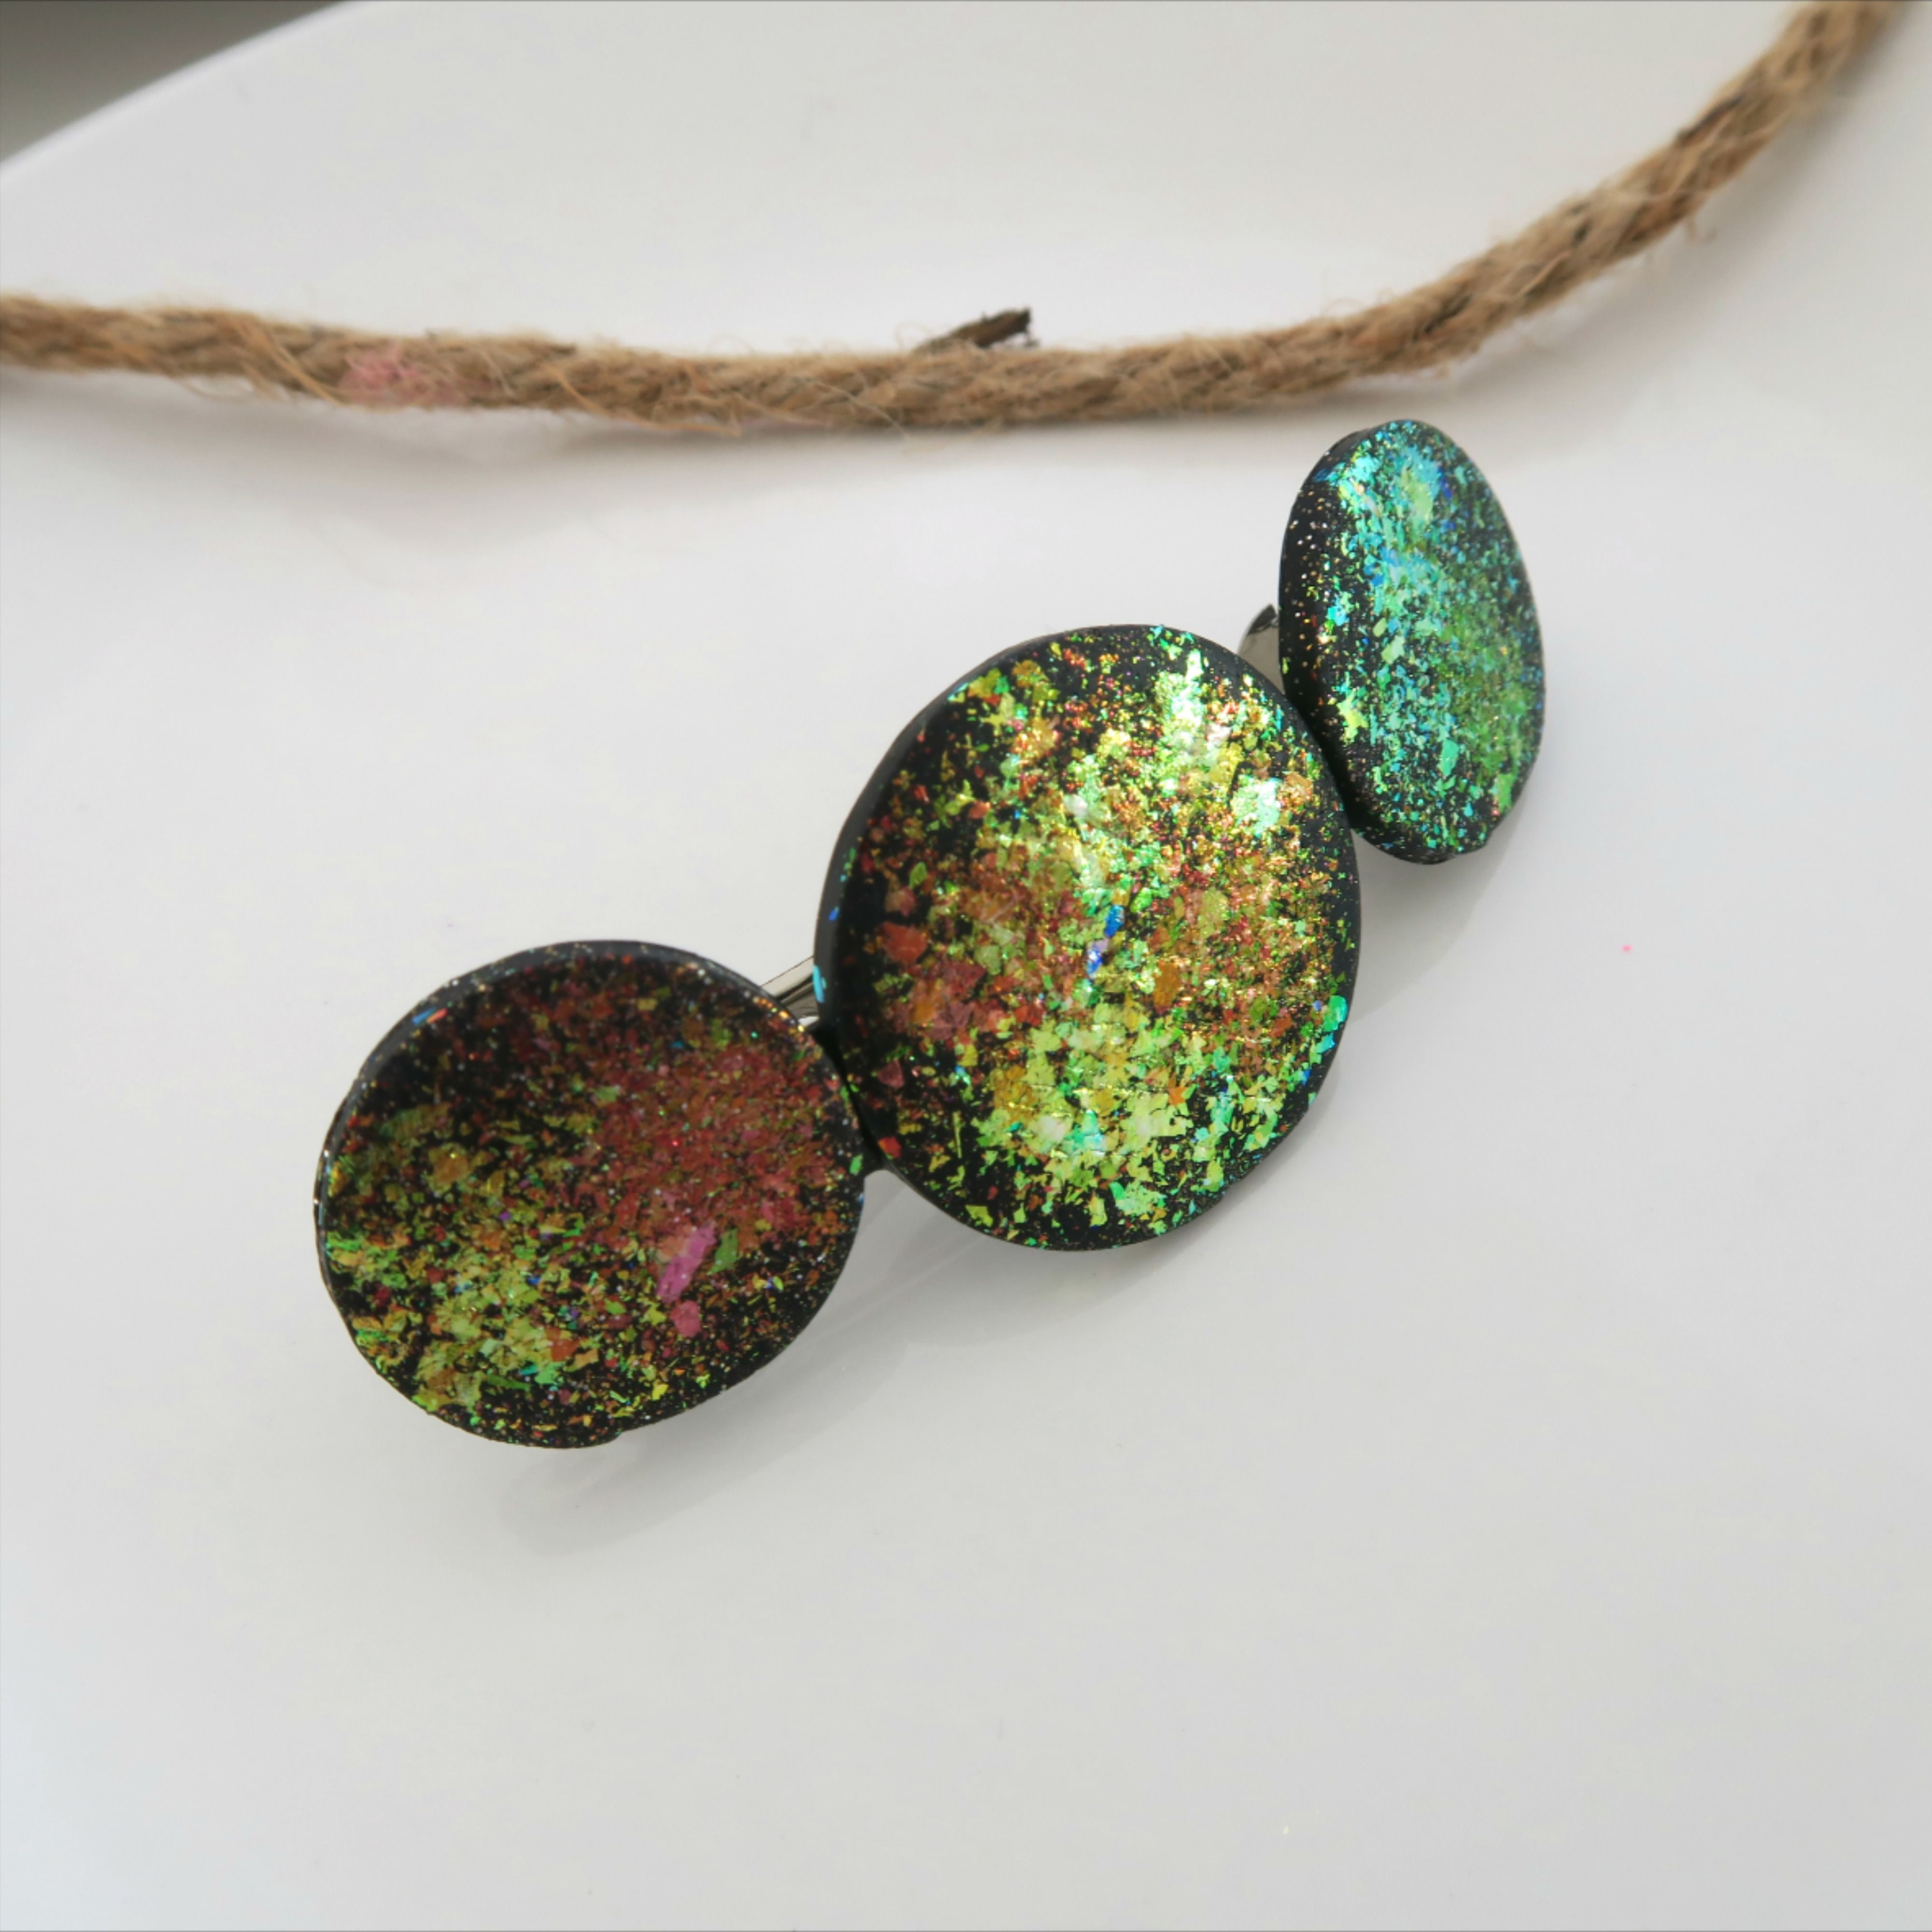 fire glitter handmade with polymer clay holographic glitter hair barrette statement hair piece Hair clip geometric hair accessory